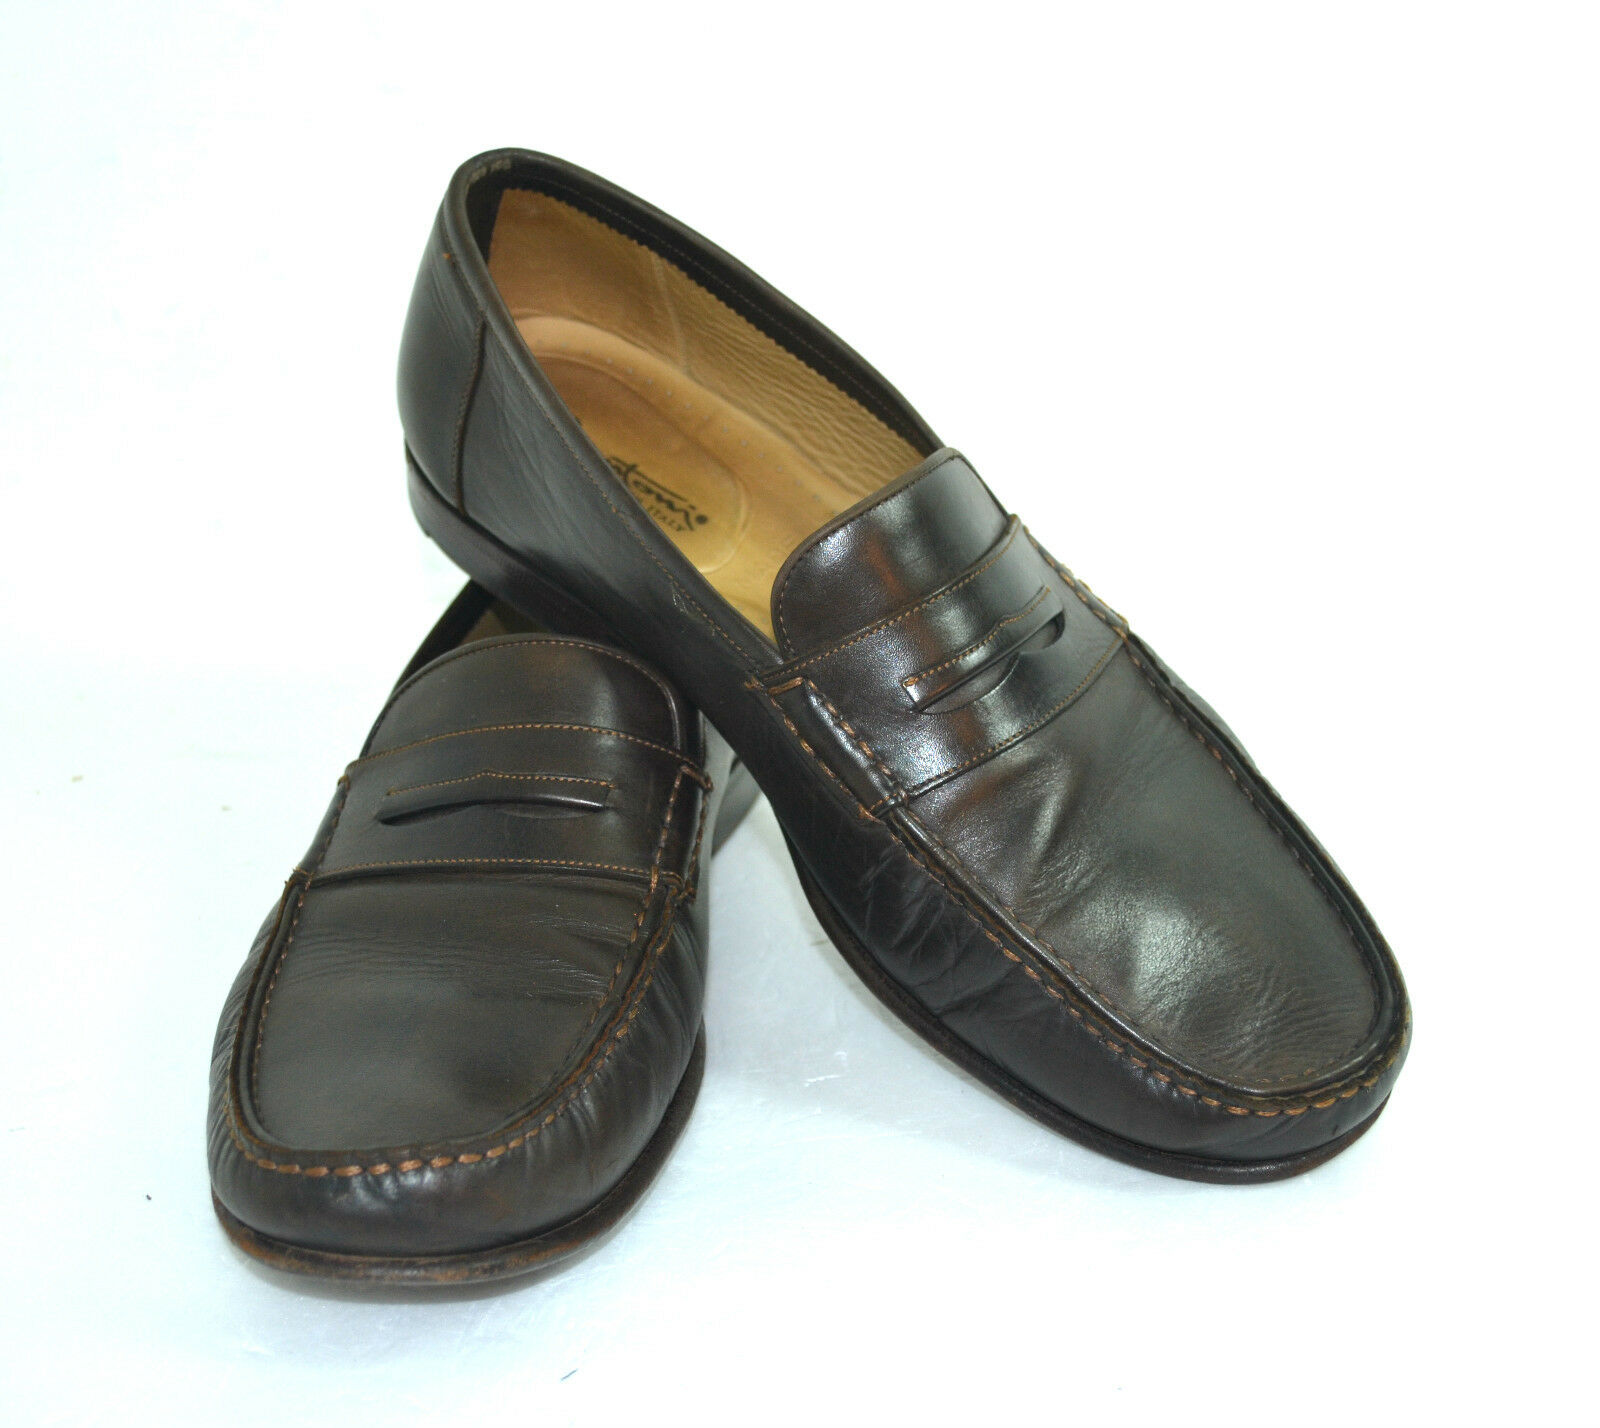 SANTONI BROWN GENUINE LEATHER DRESSY SHOES HIGH QUALITY ITALY SIZE 12 EE